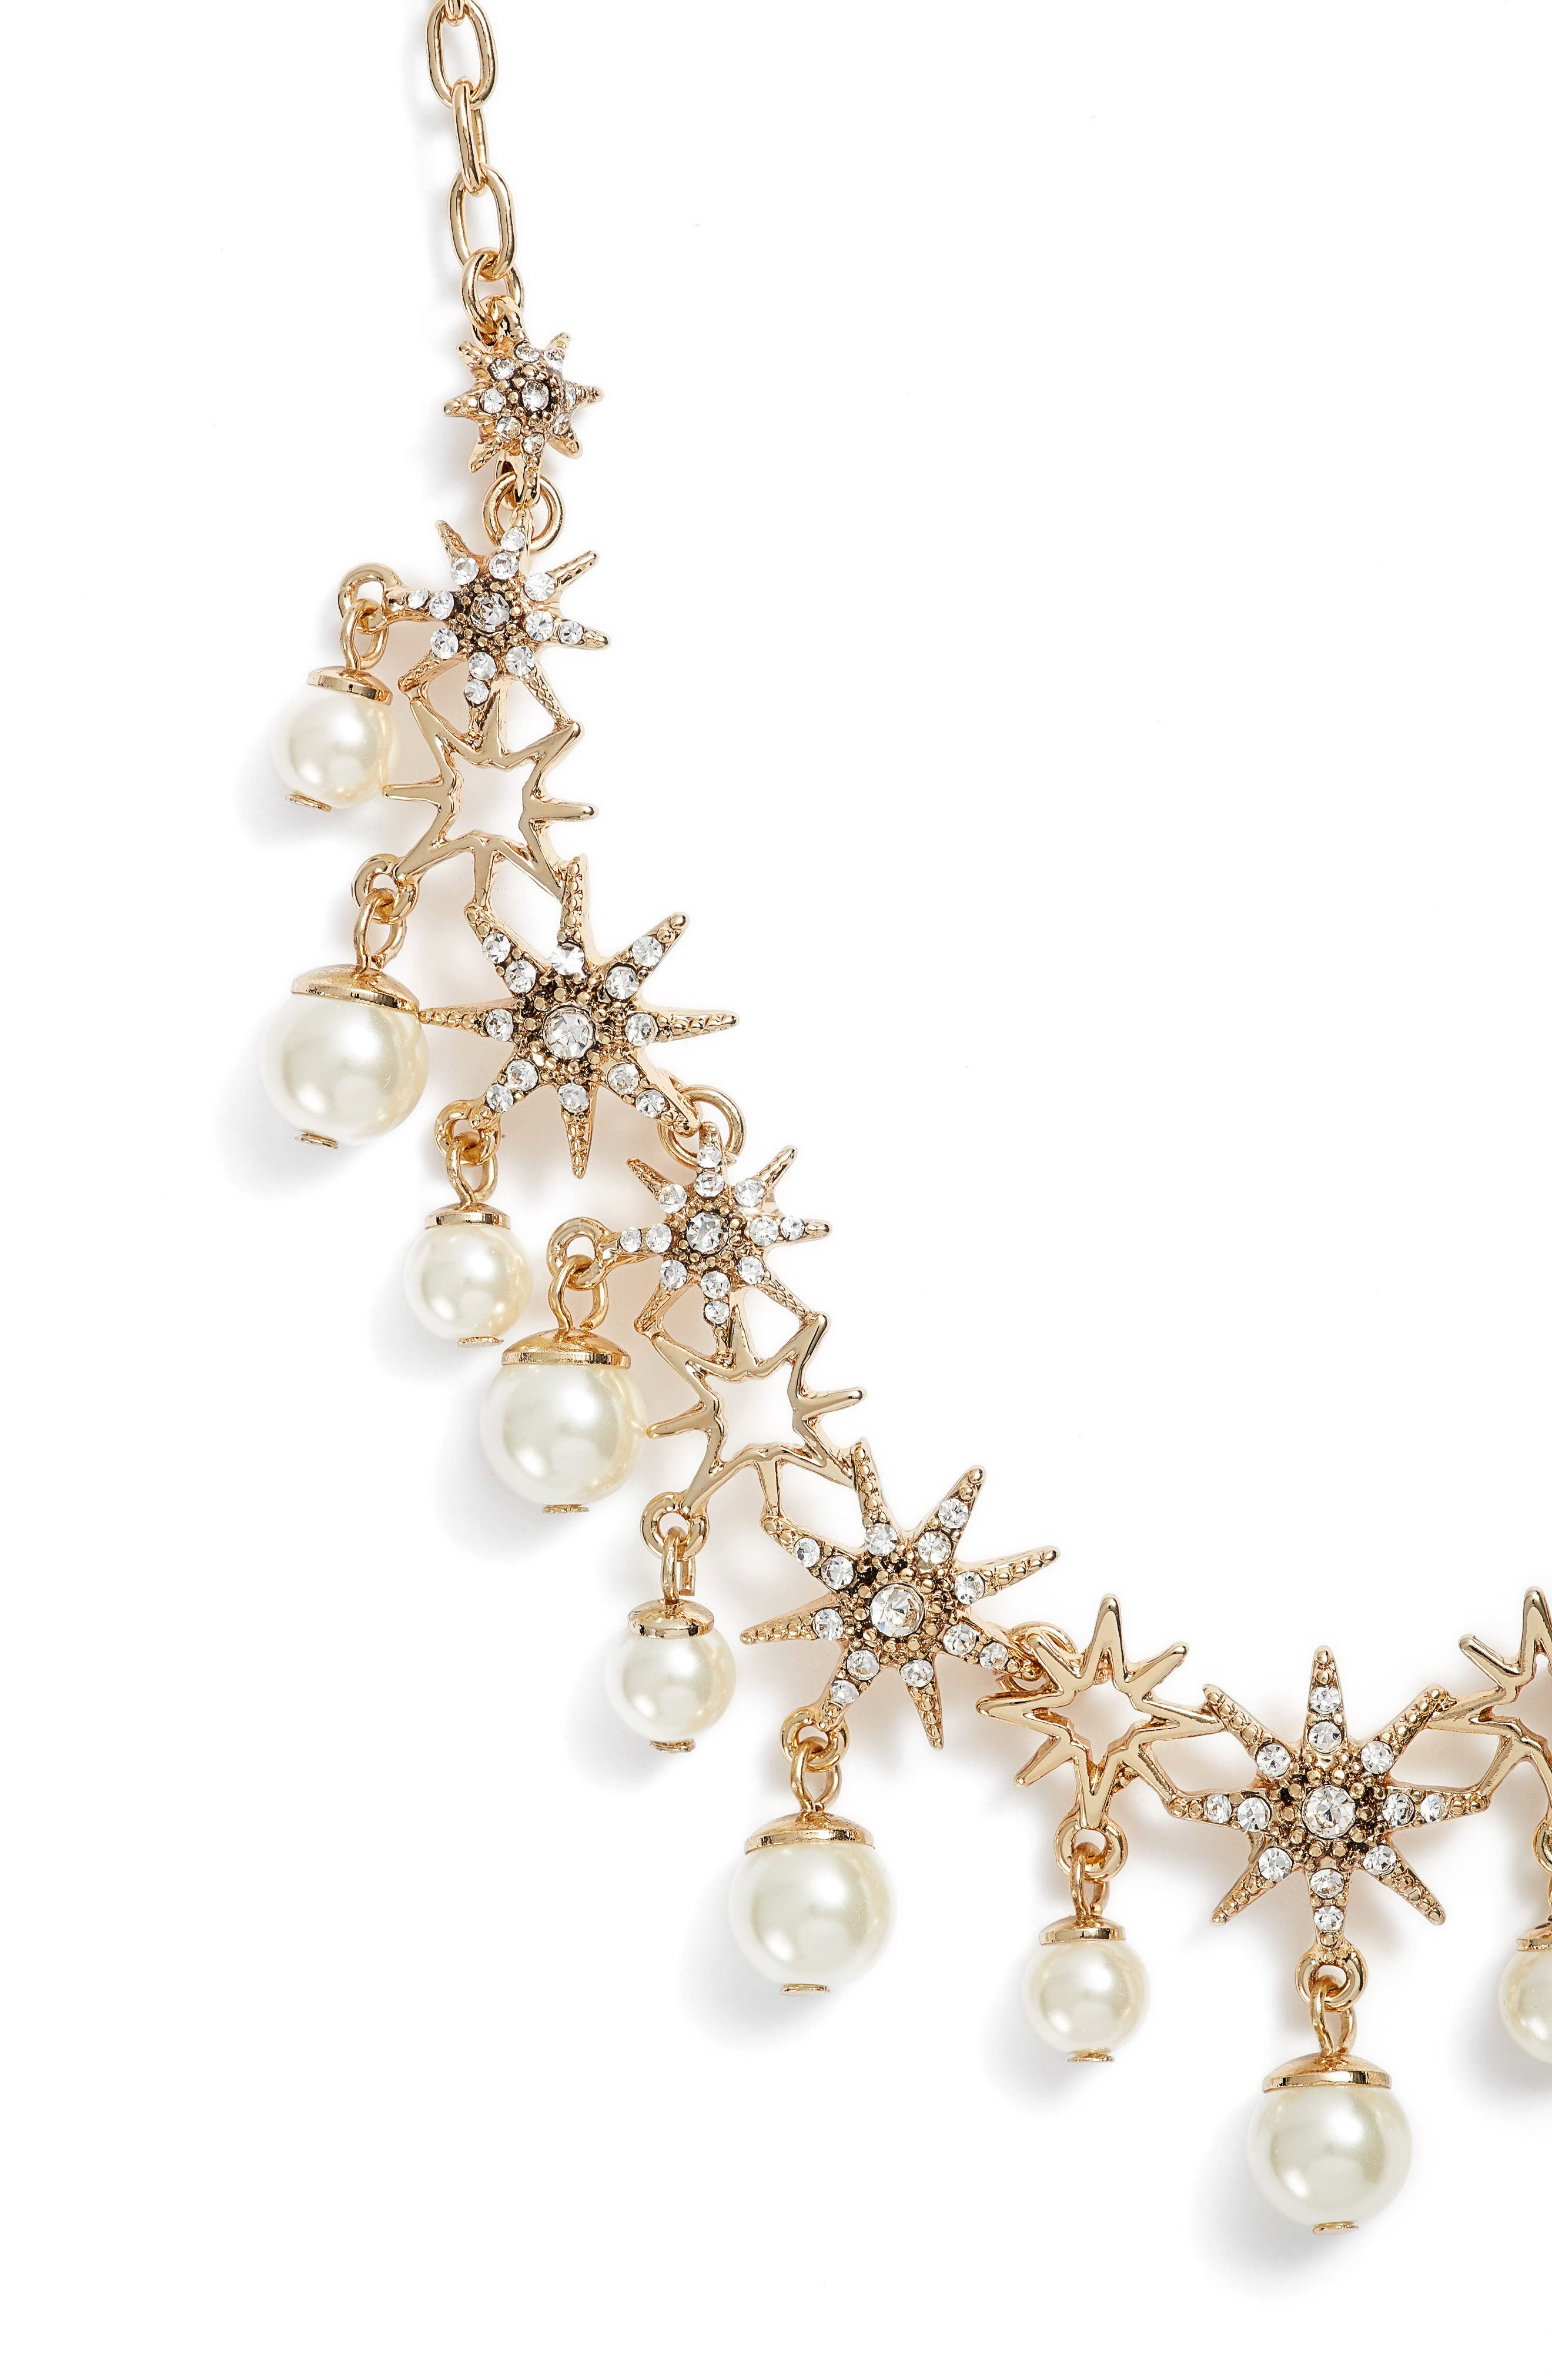 Star Collar Necklace,                             Alternate thumbnail 2, color,                             Gold/ Crystal/ Pearl